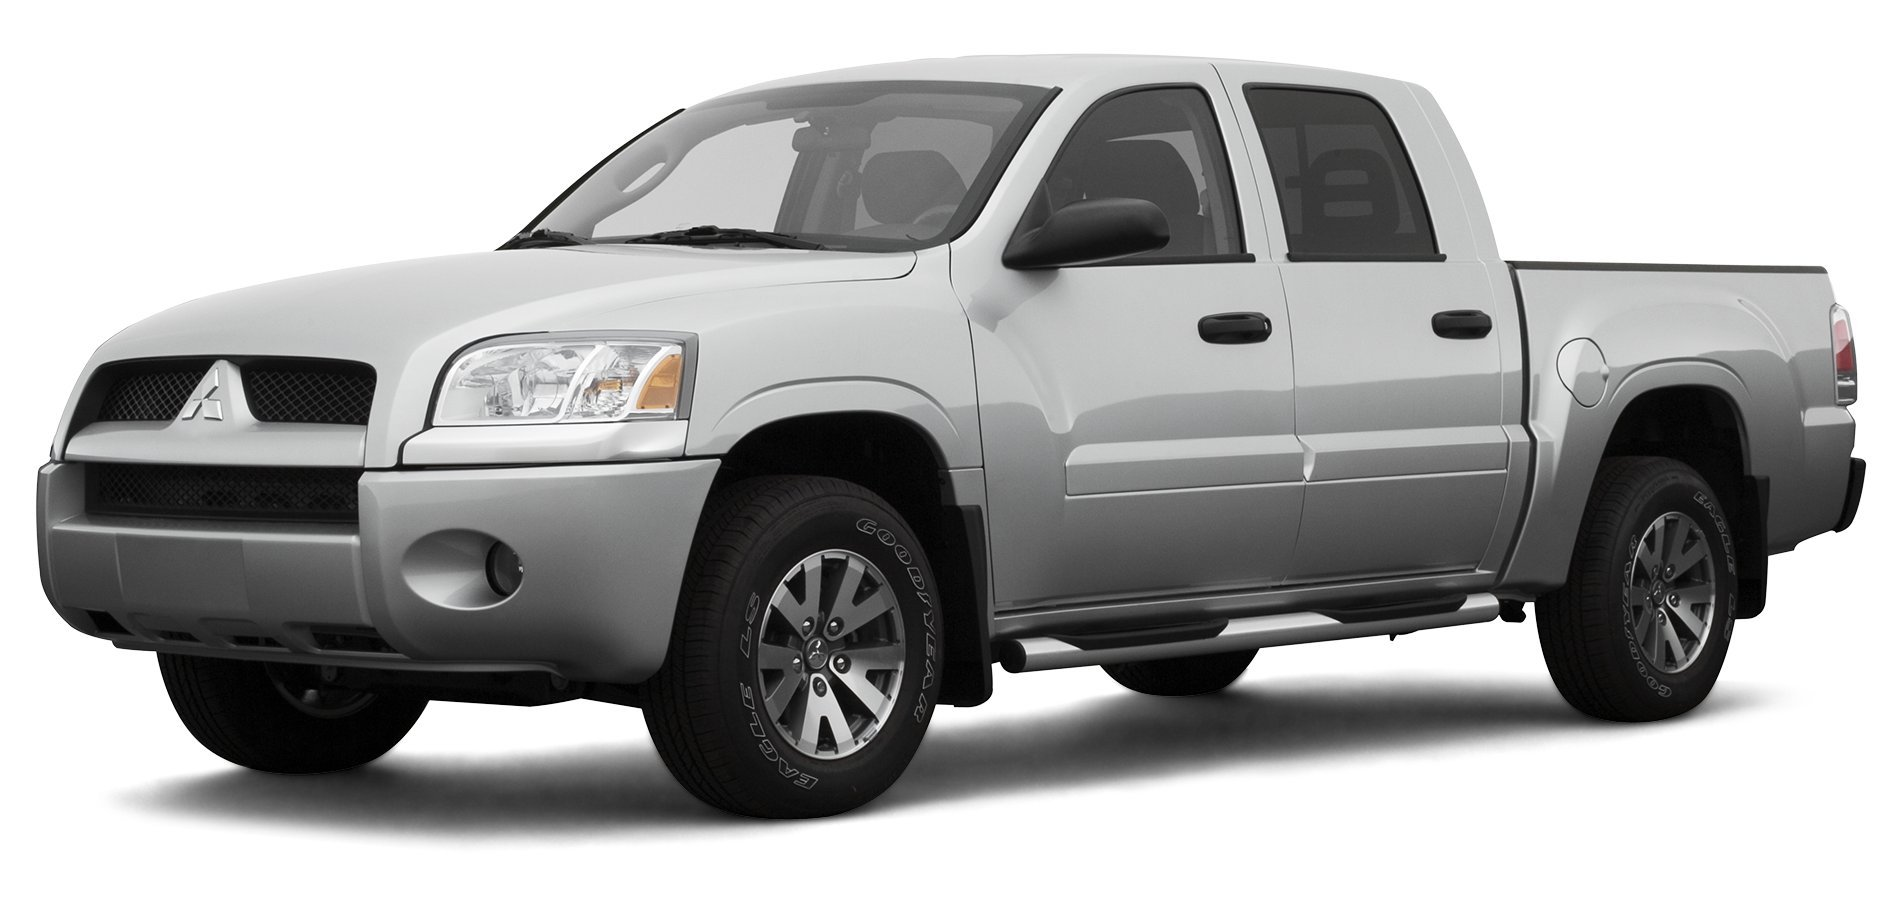 2007 nissan frontier reviews images and. Black Bedroom Furniture Sets. Home Design Ideas